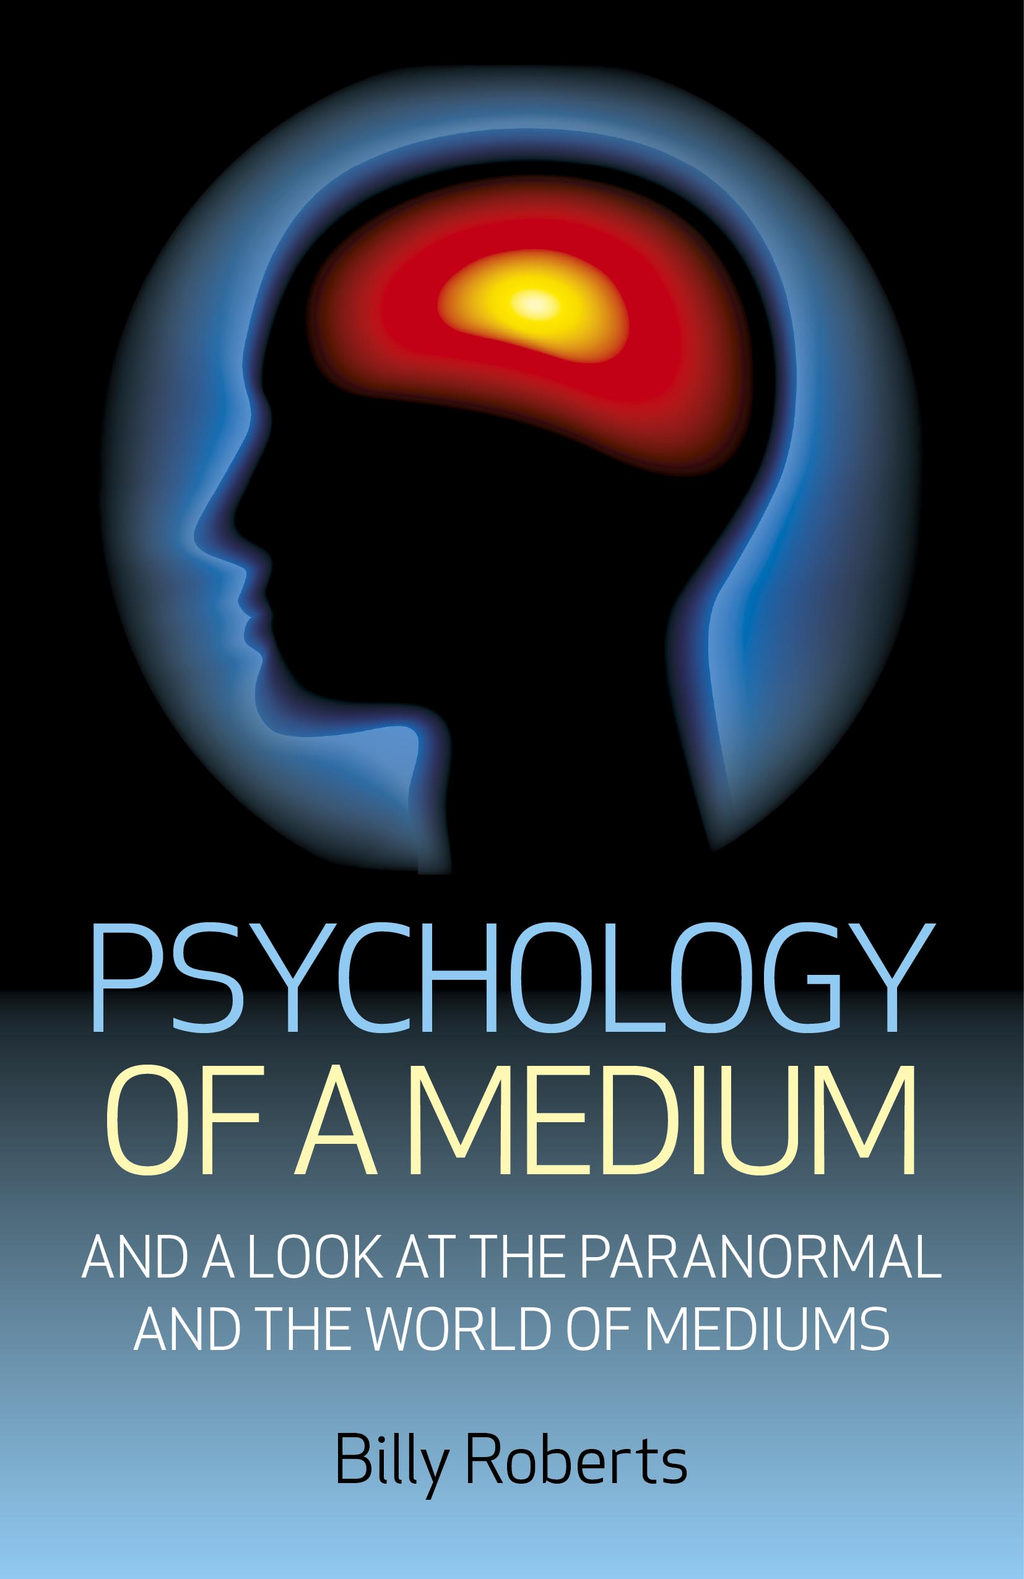 Psychology of a Medium